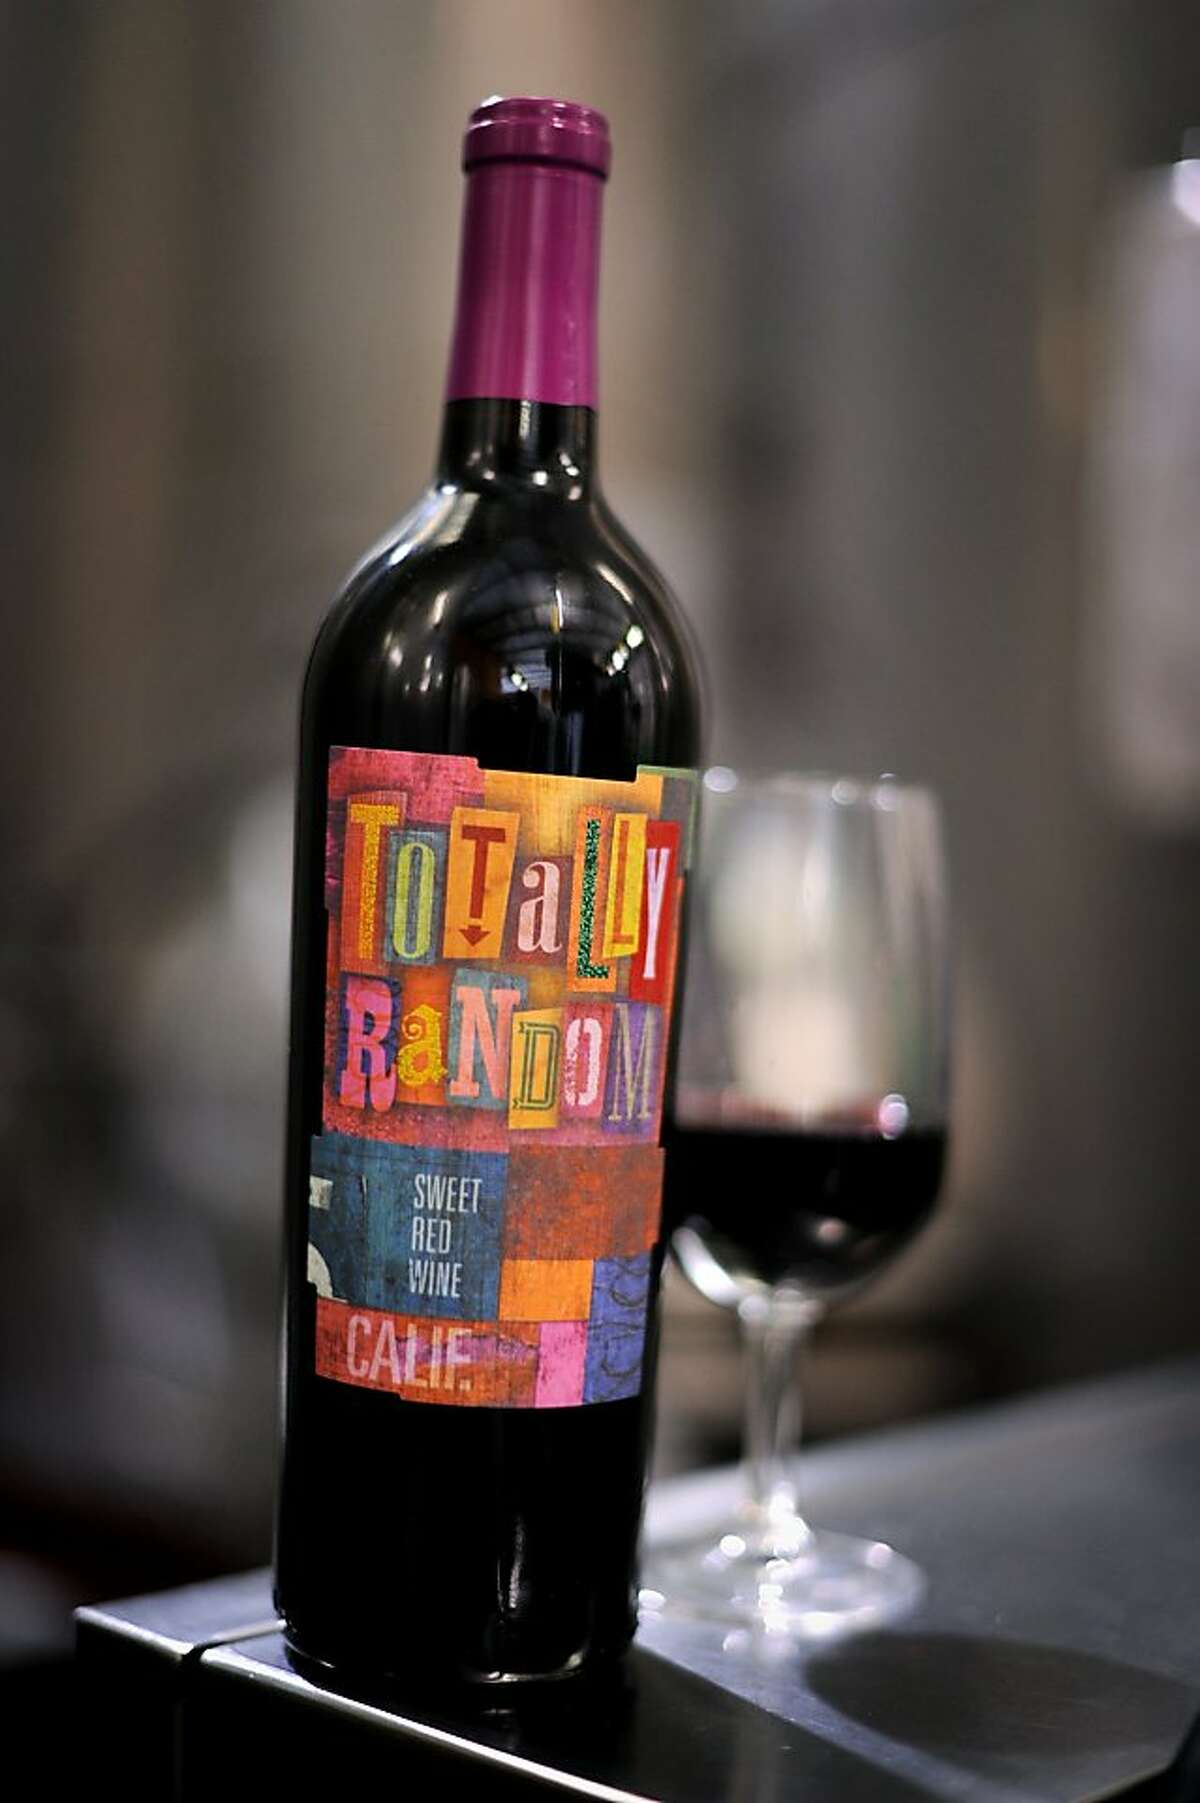 Totally Random, a sweet red wine created by Adler Fels Winery in Santa Rosa, California. The wine was created to attract the younger drinking market. September, 30 2011.